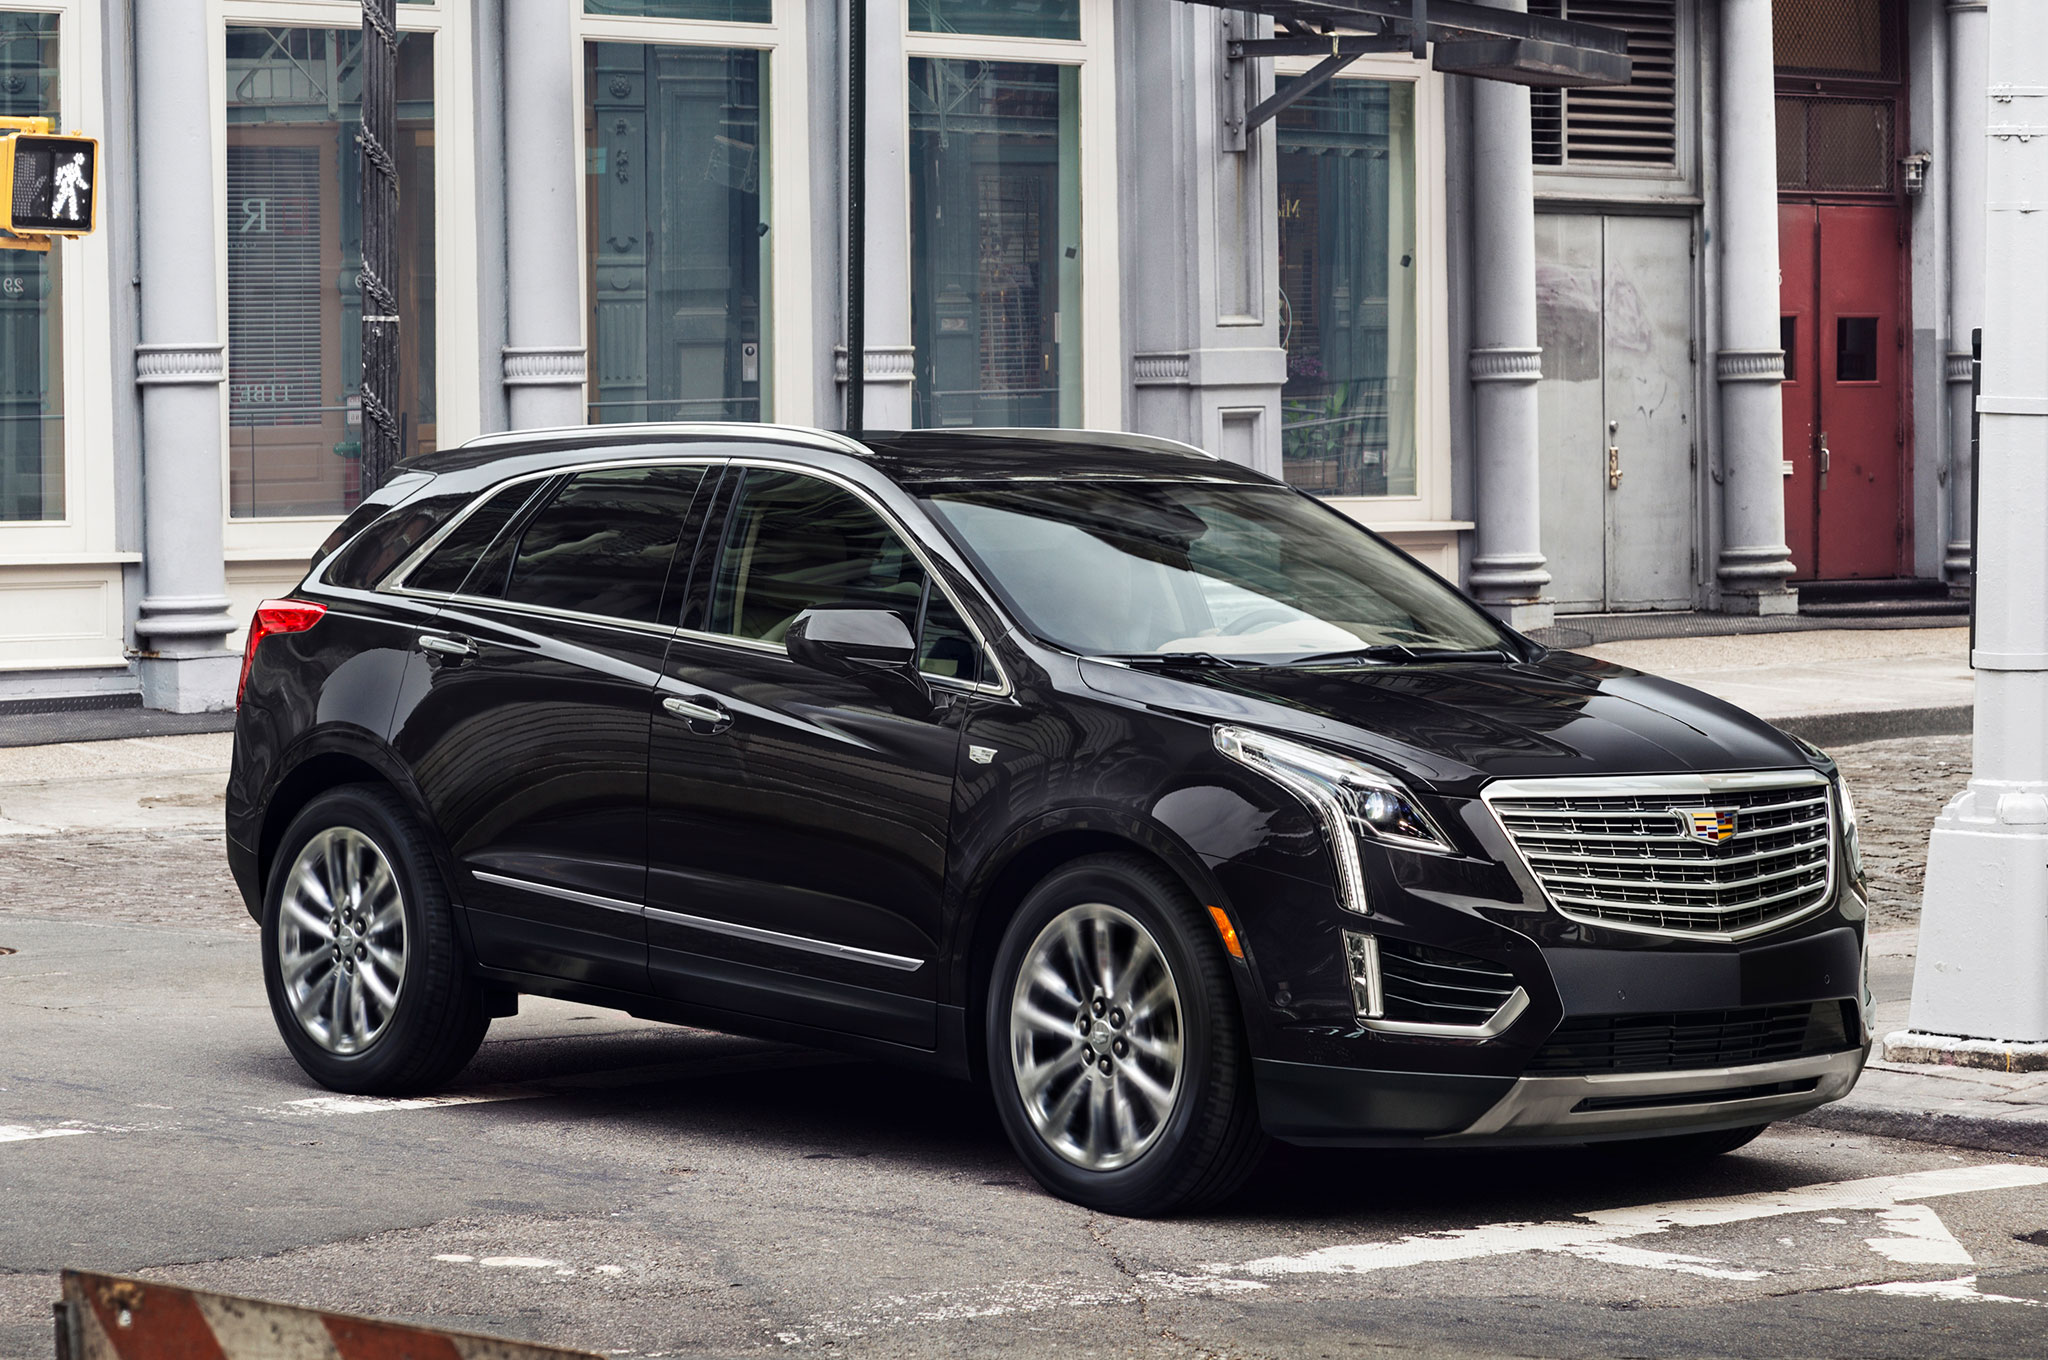 2017 Cadillac XT5 front side view on street 2017 cadillac xt5 starts at $39,990 photo gallery Cadillac CTS 2003 Wiring-Diagram at reclaimingppi.co